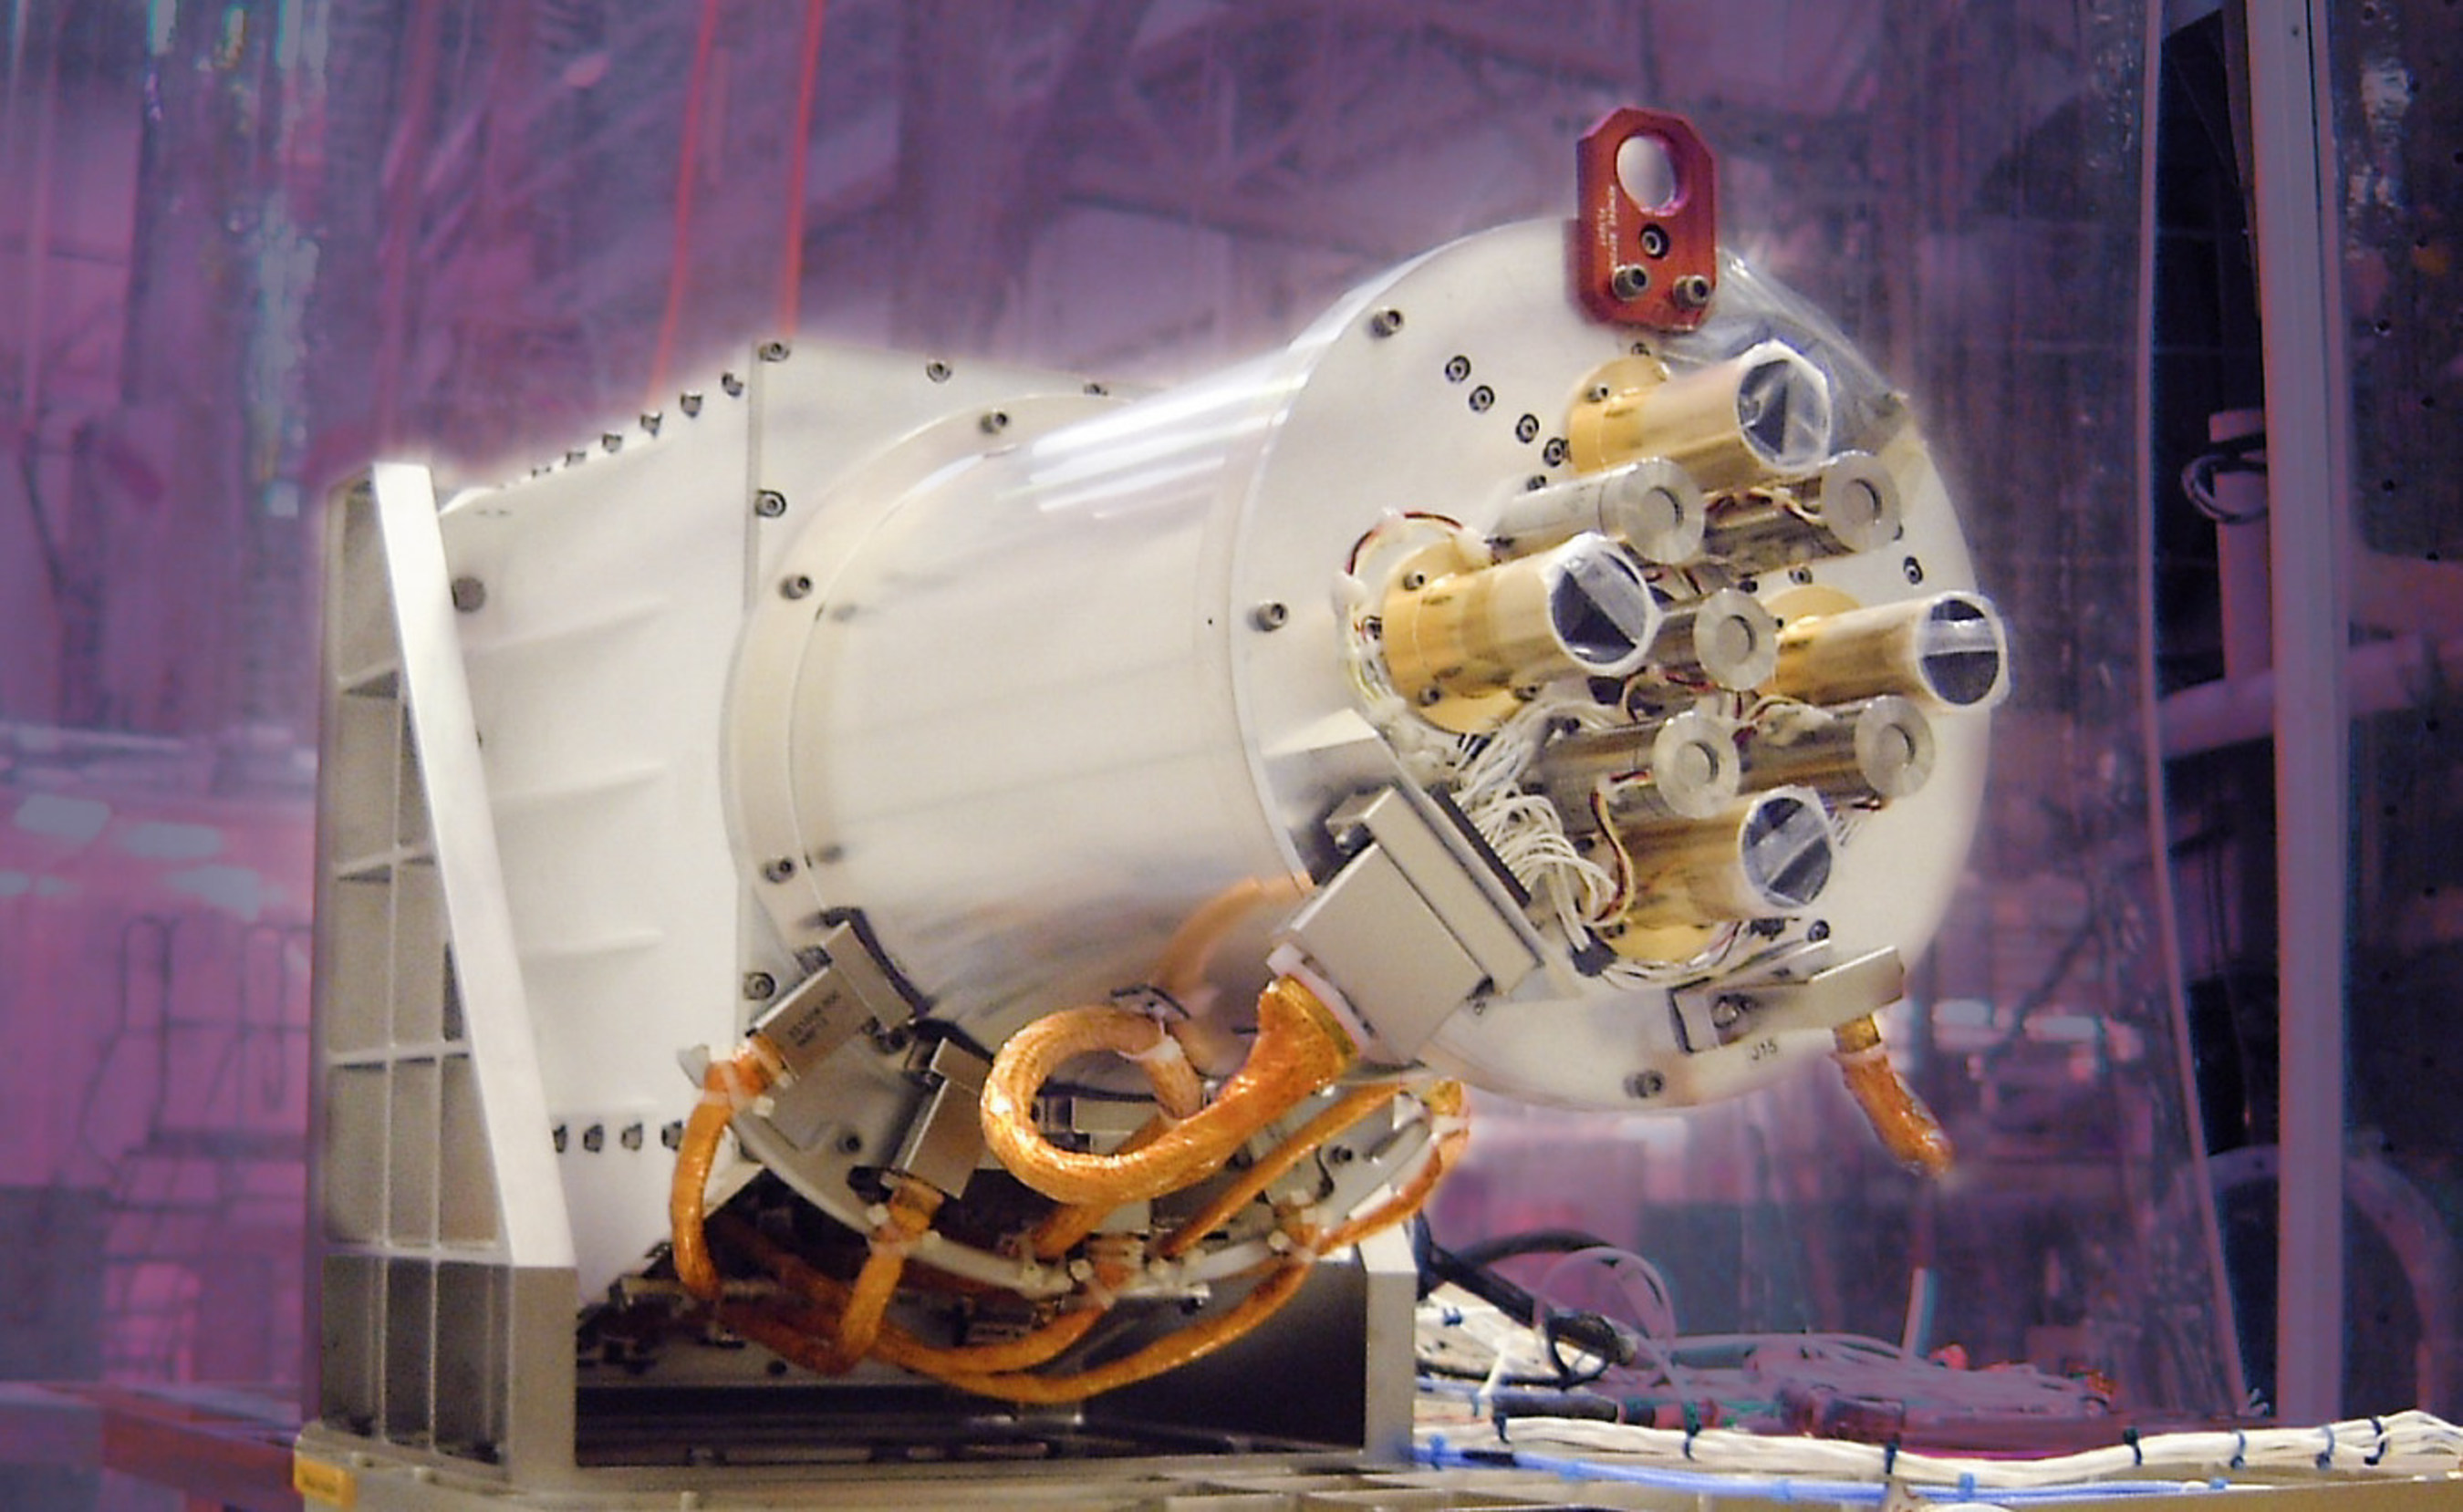 The Ball Aerospace-built radiometer for the NASA/NOAA Deep Space Climate Observatory mission is scheduled to launch from Cape Canaveral on February 8. The mission is designed to provide solar wind monitoring and forecasting and to aid scientists in measuring the energy exchange between the earth and sun.